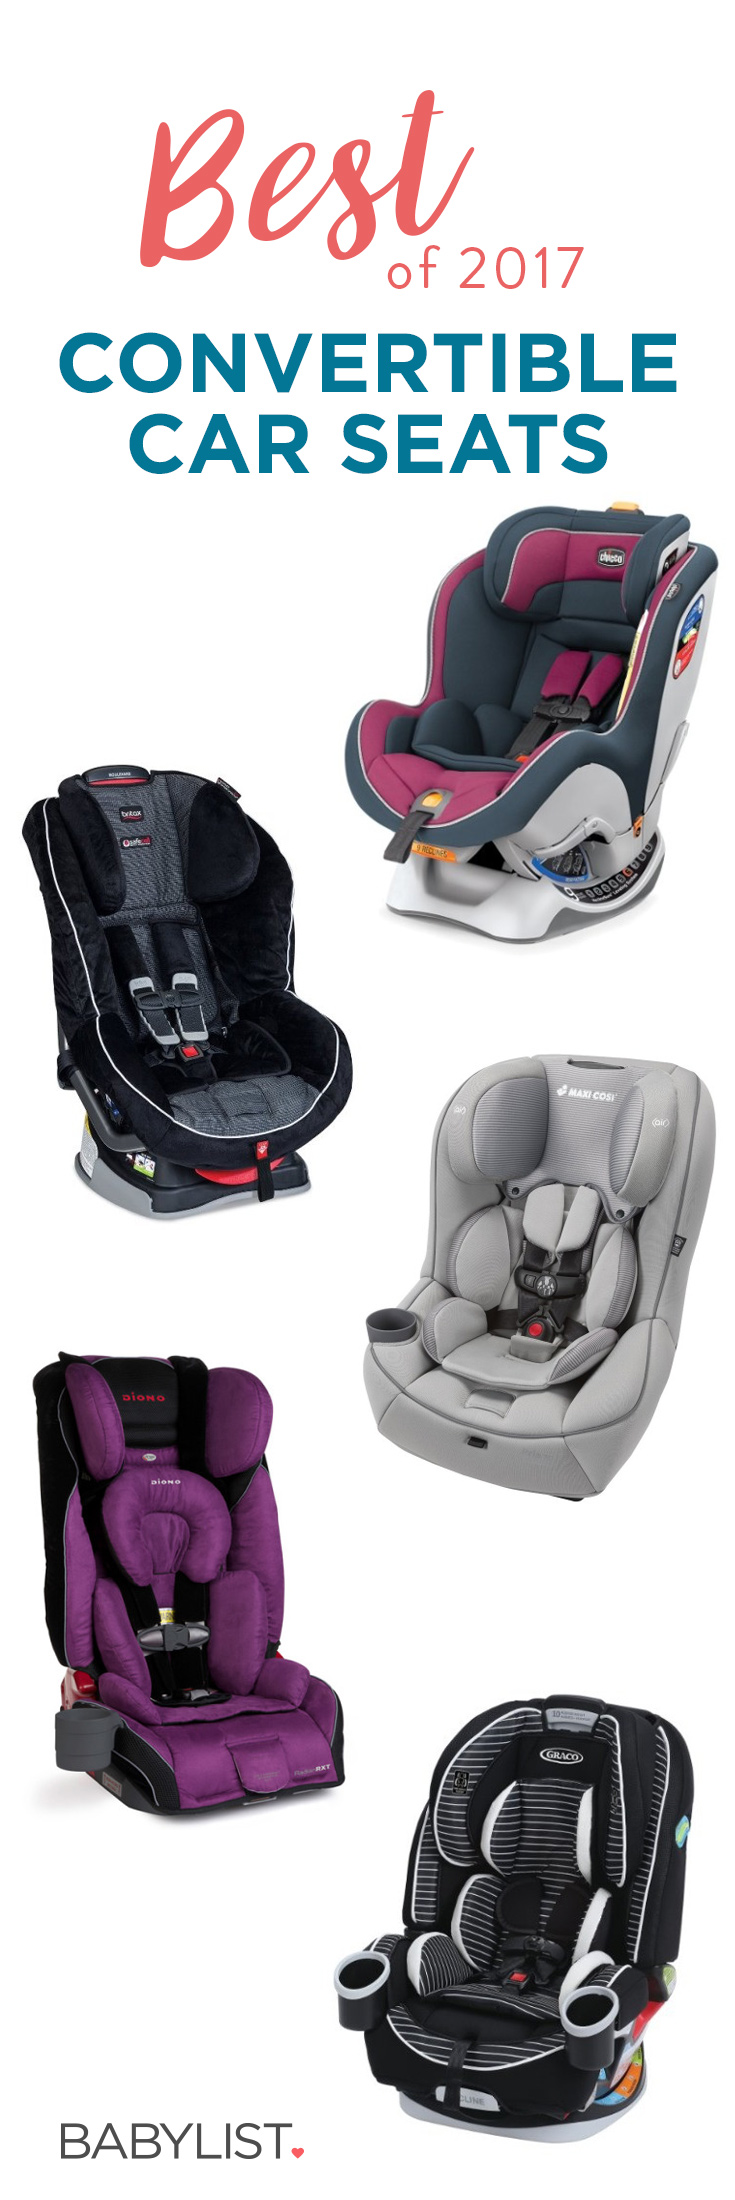 Best Convertible Car Seats of 2018